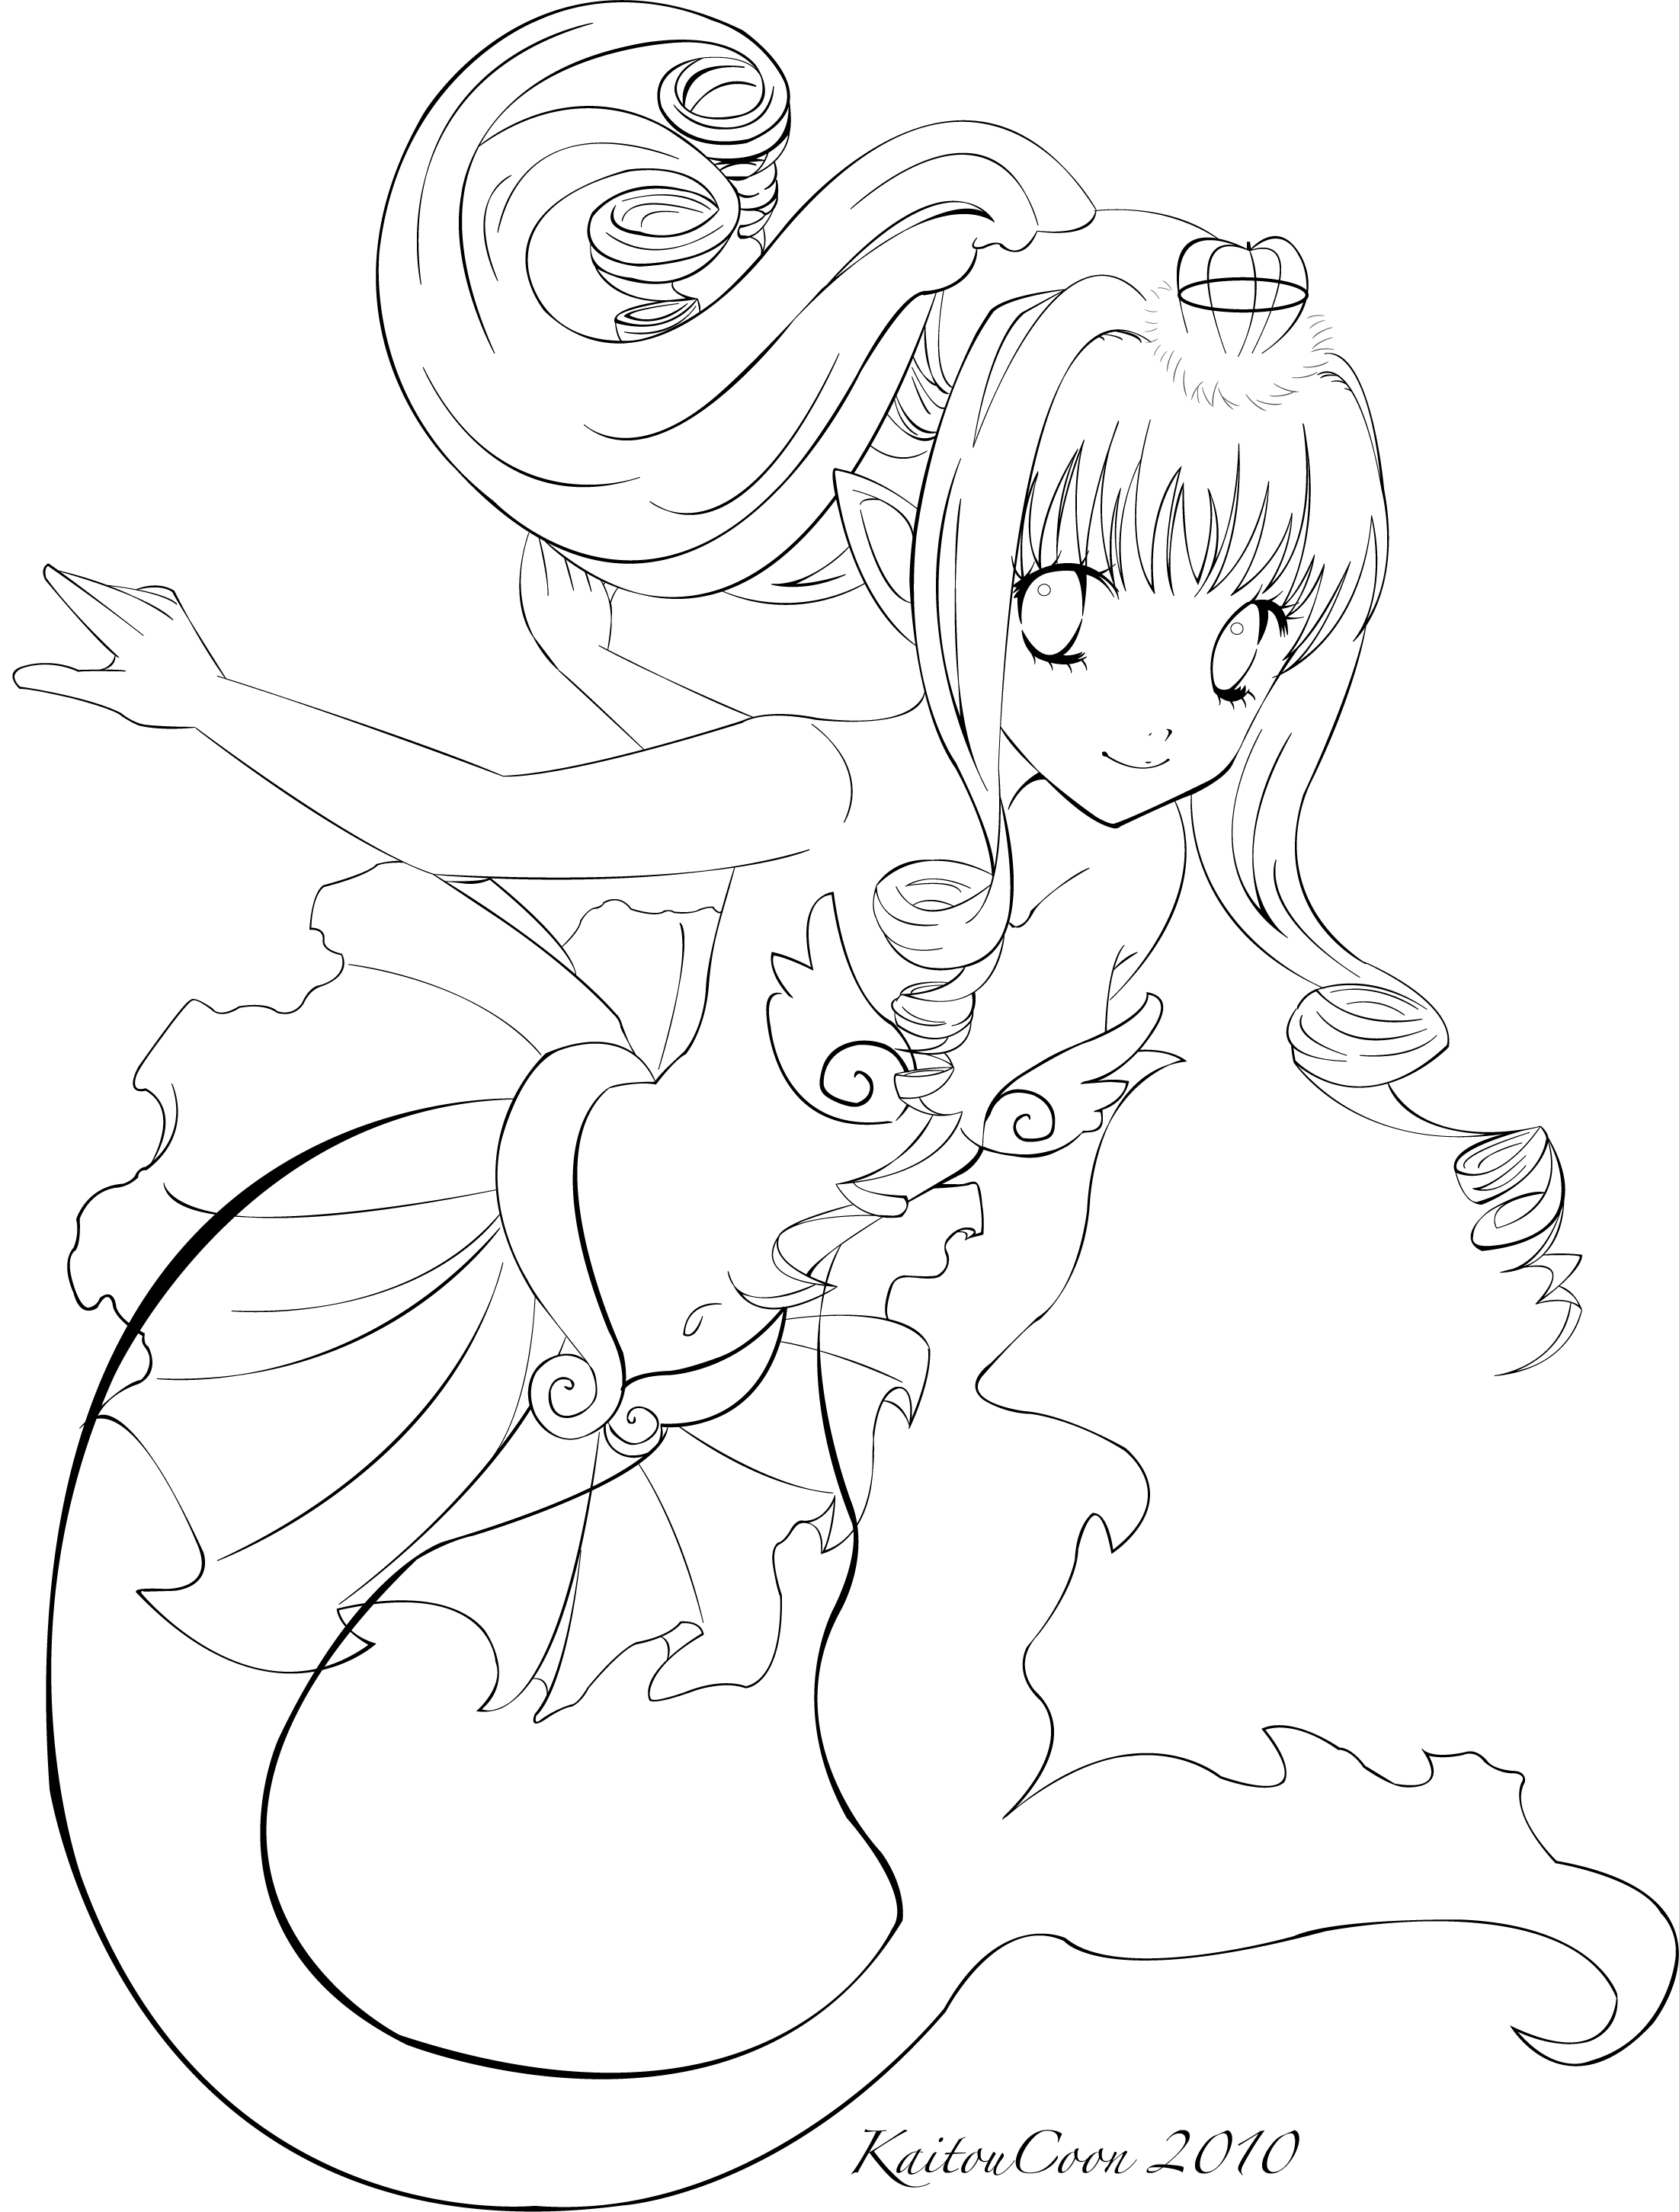 anime mermaid girl coloring pages anime mermaid coloring pages at getcoloringscom free pages mermaid girl anime coloring